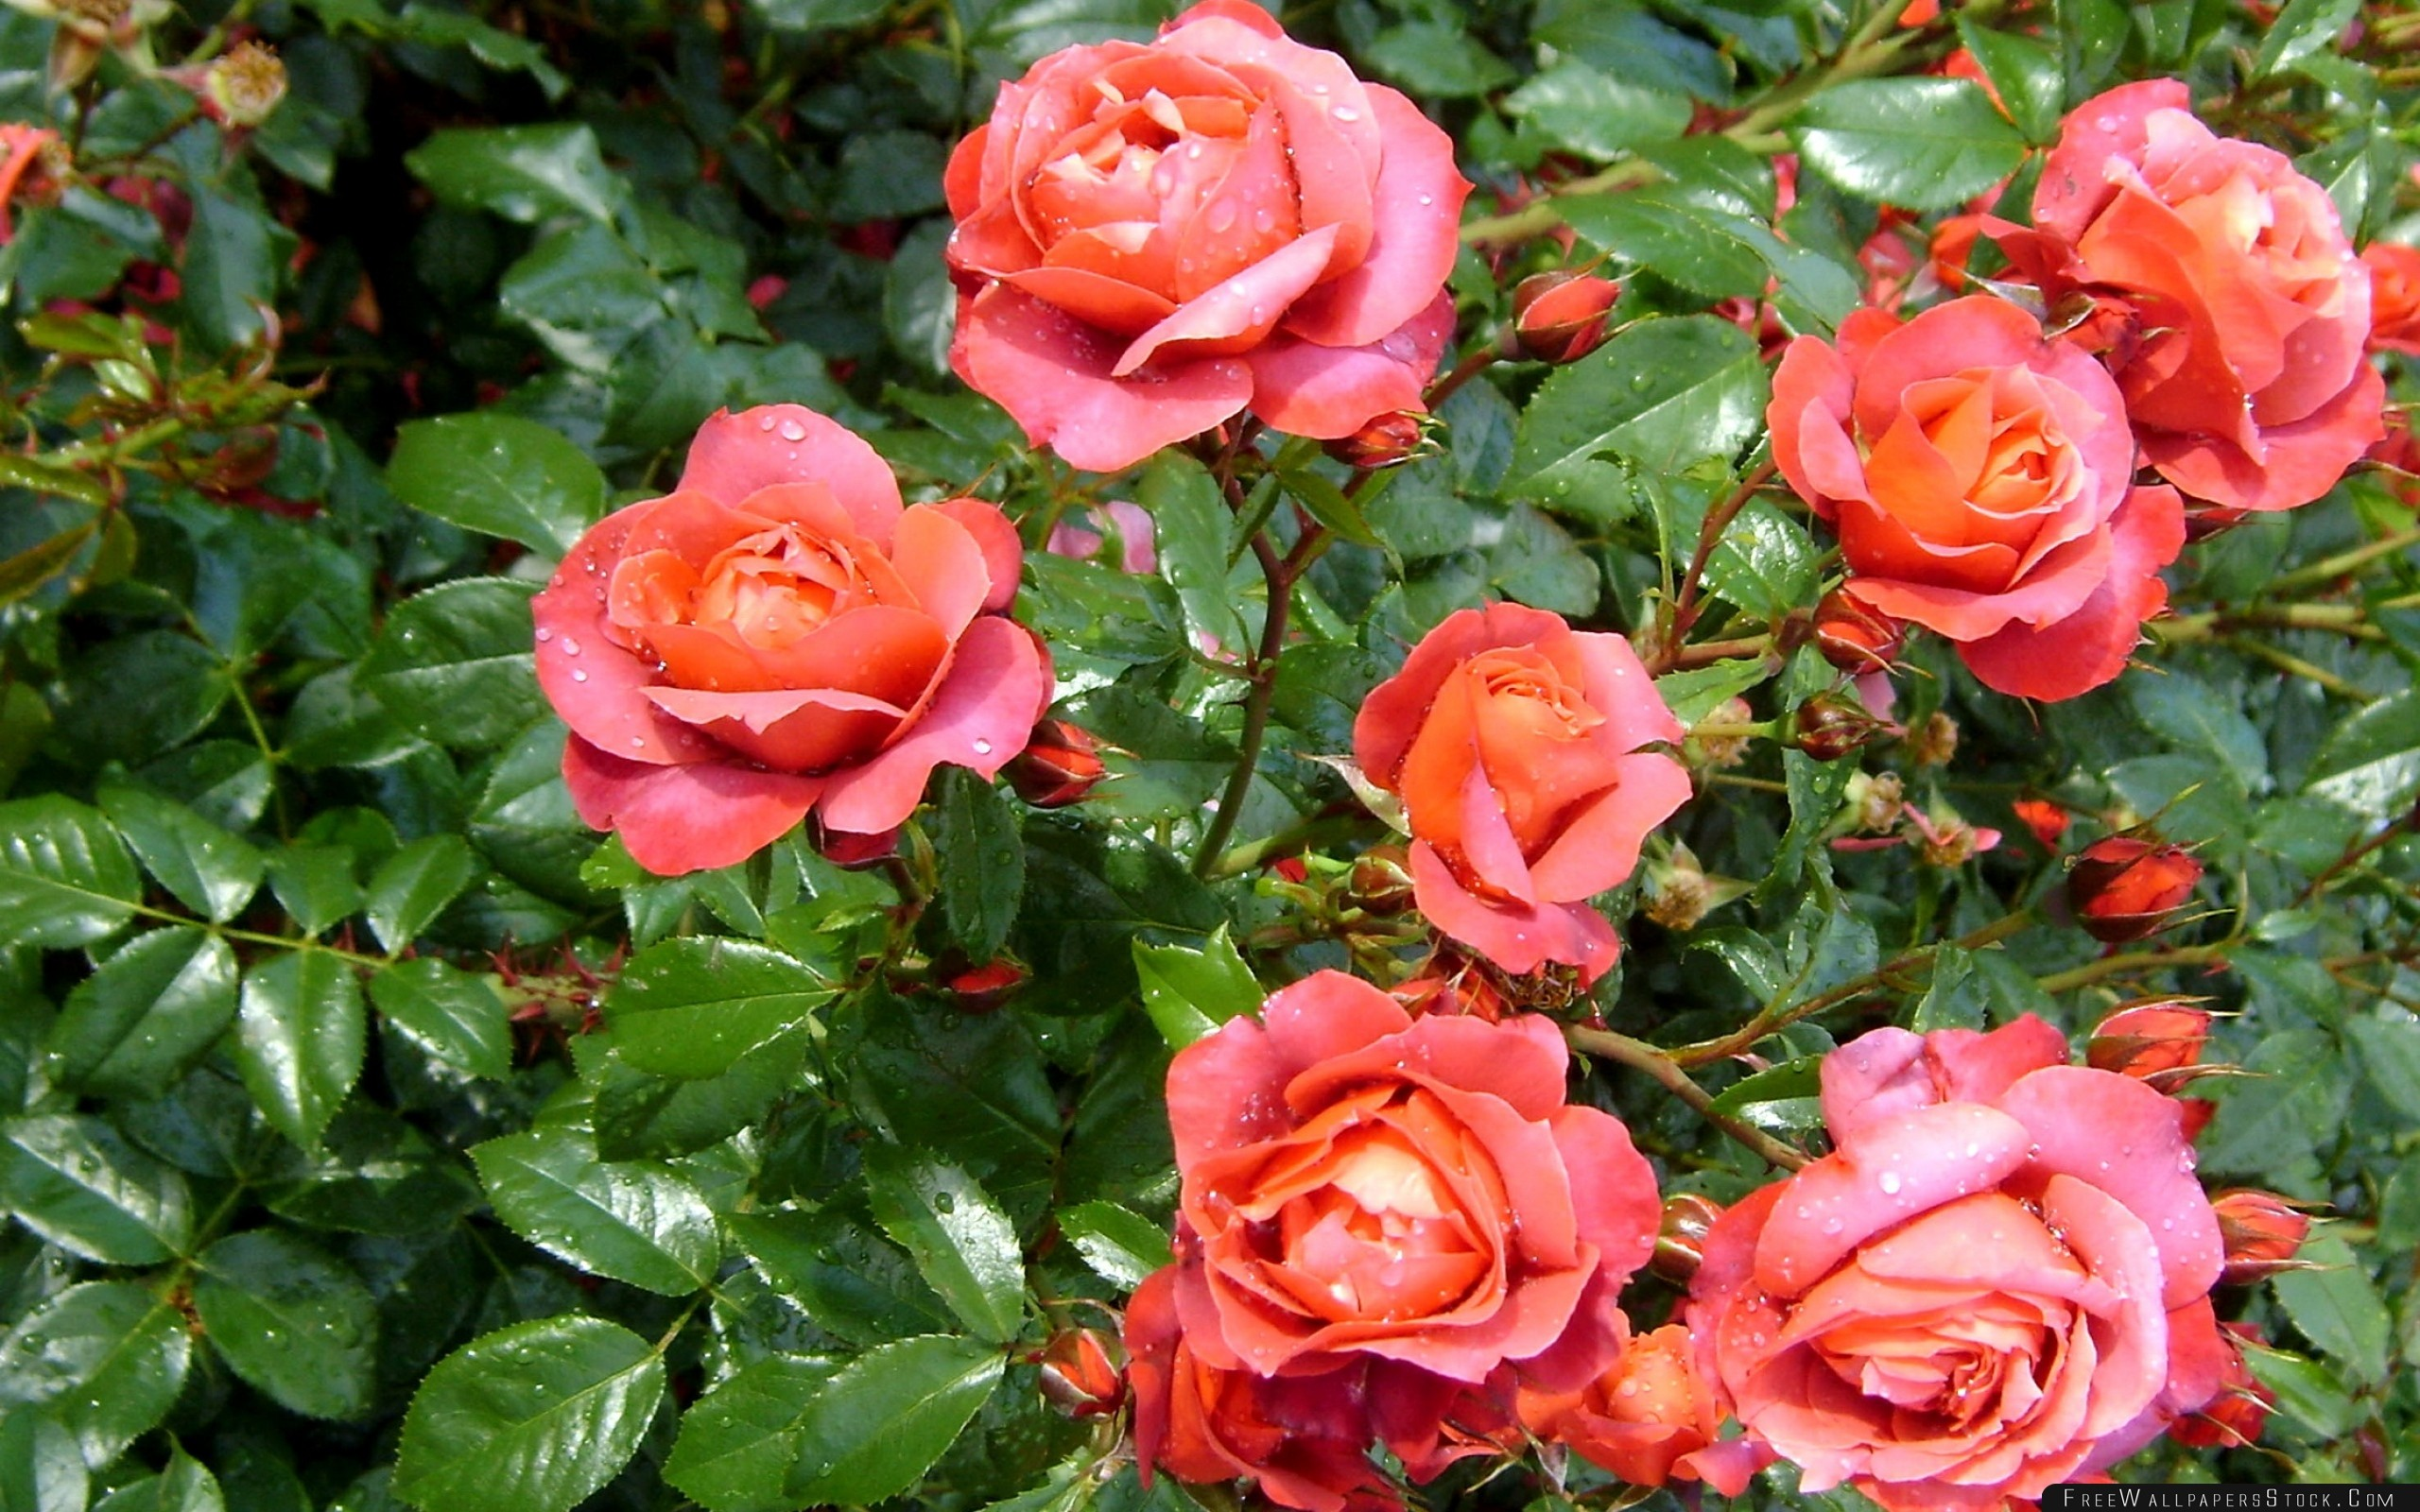 Download Free Wallpaper Roses Flowers Bushes Drop Freshness Green